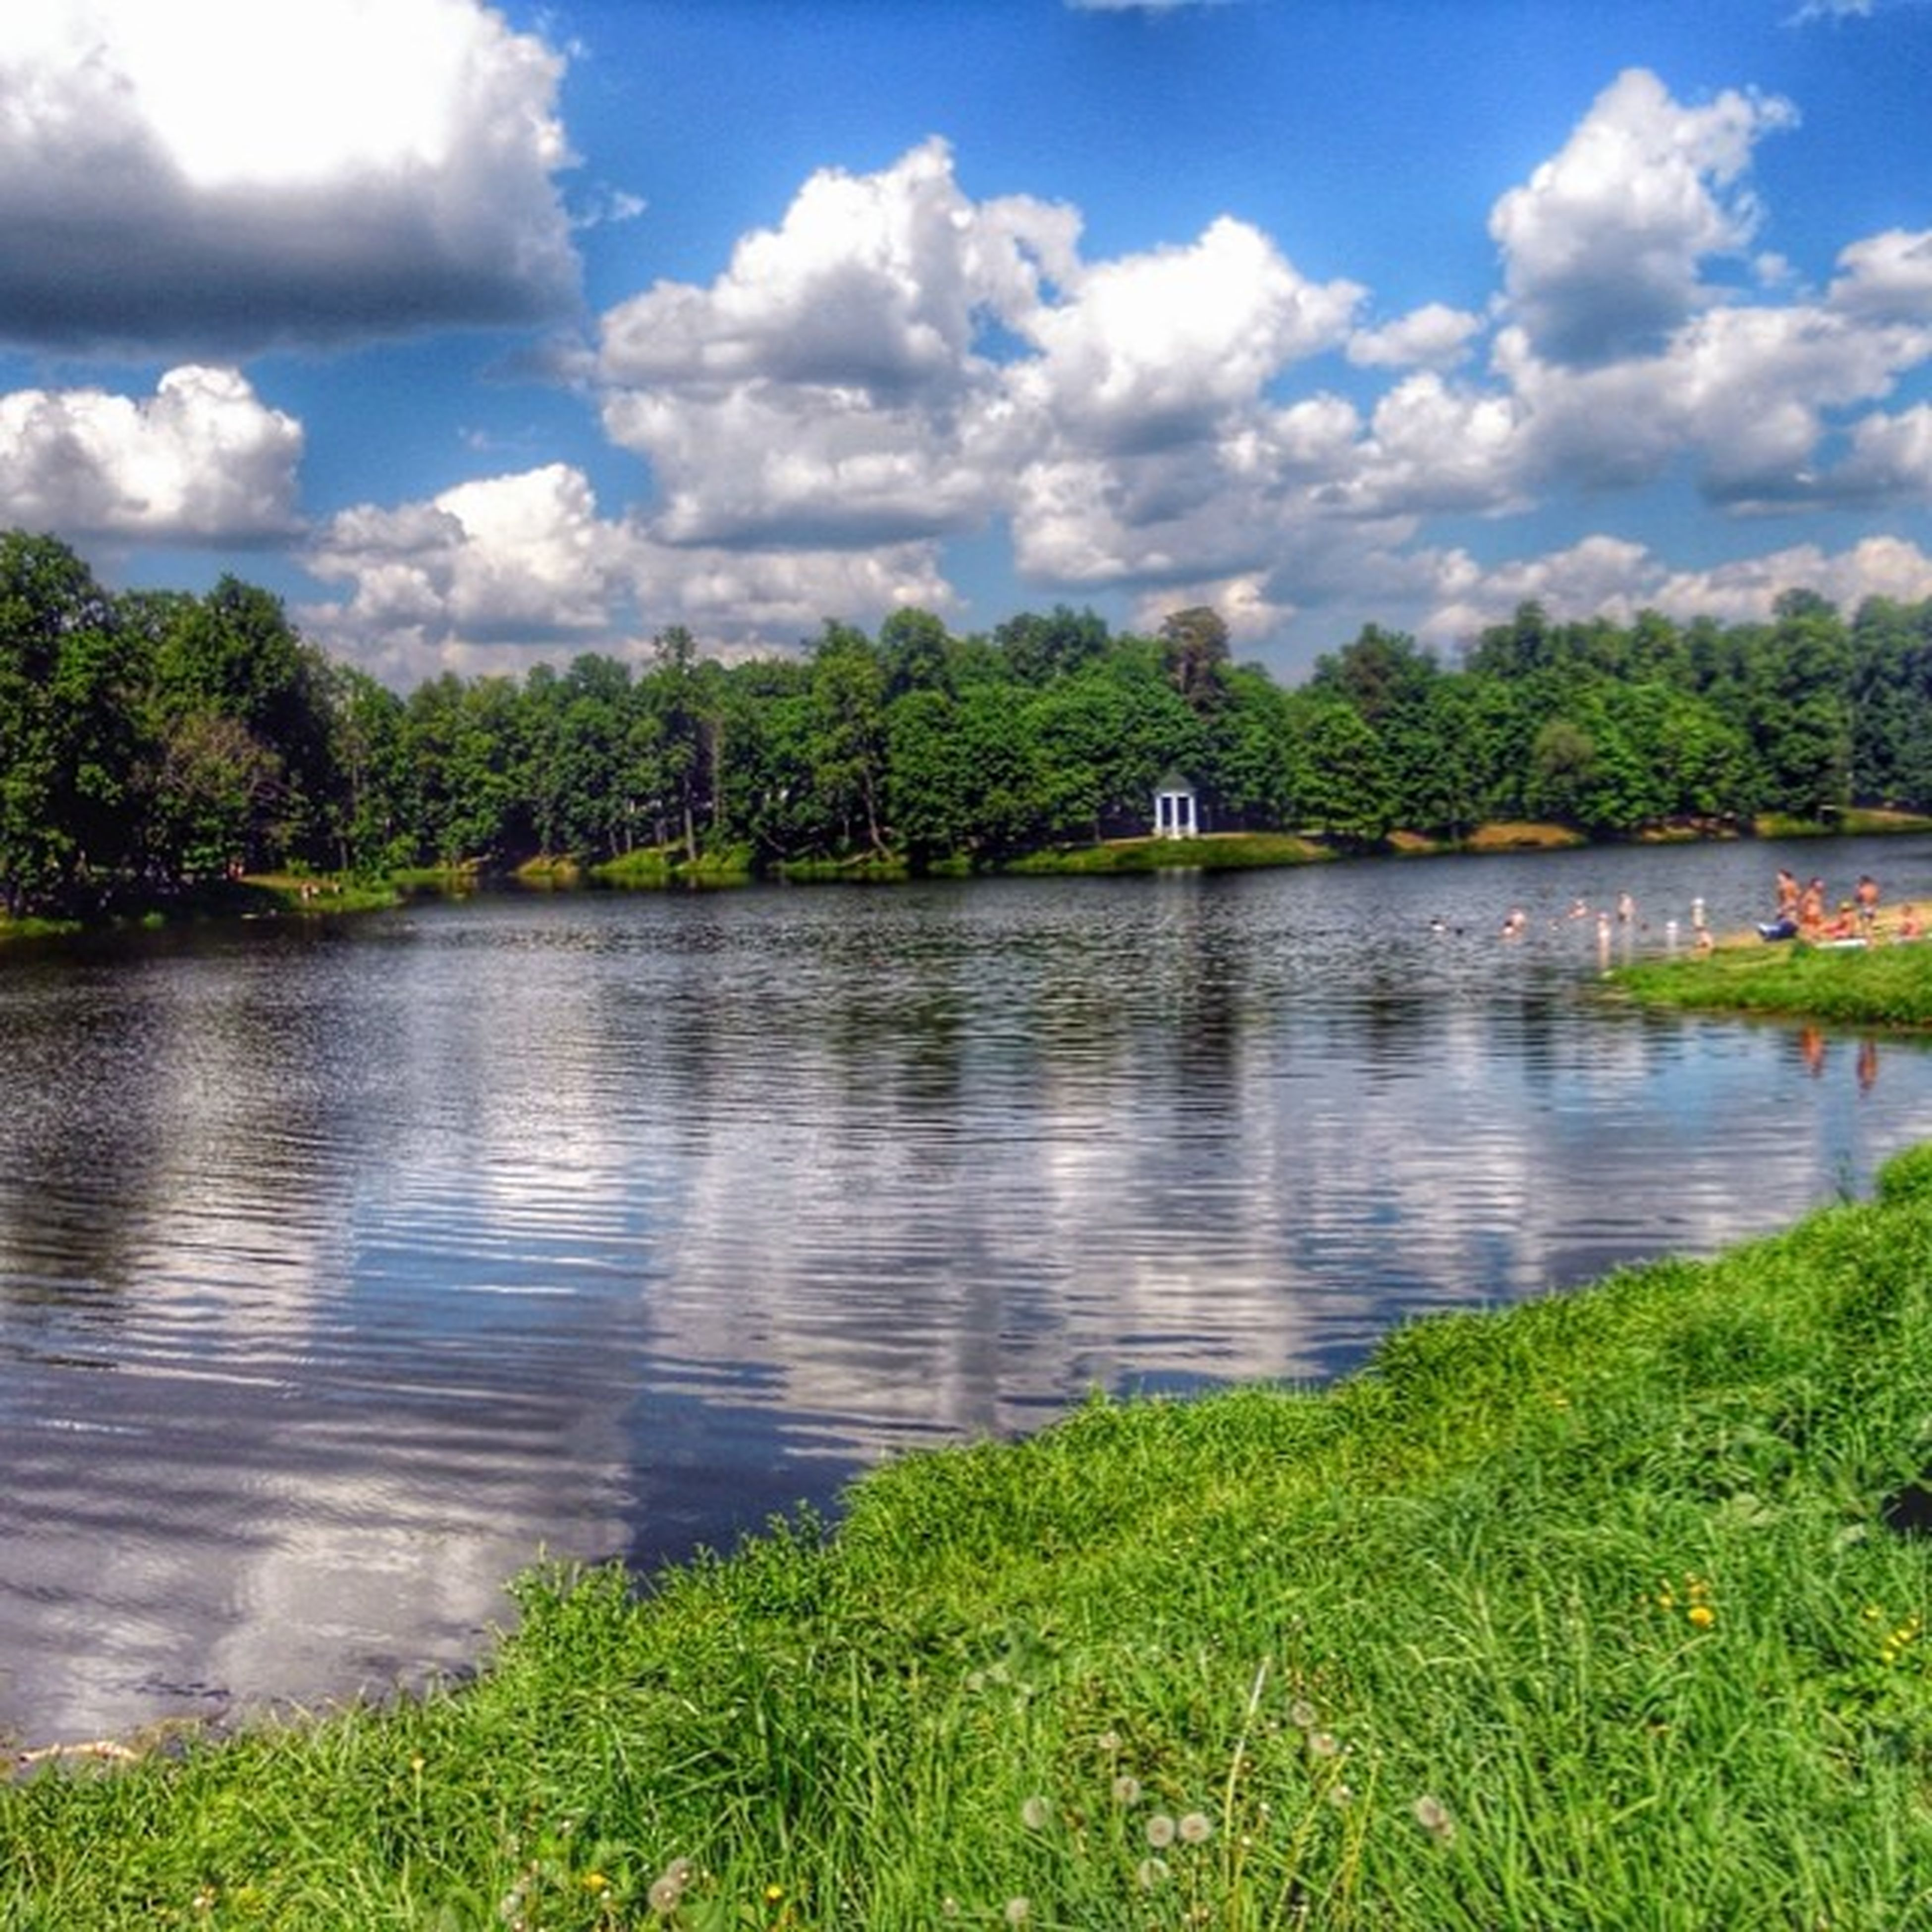 water, tree, sky, tranquil scene, cloud - sky, tranquility, lake, scenics, grass, beauty in nature, cloud, nature, reflection, green color, cloudy, growth, river, idyllic, day, plant